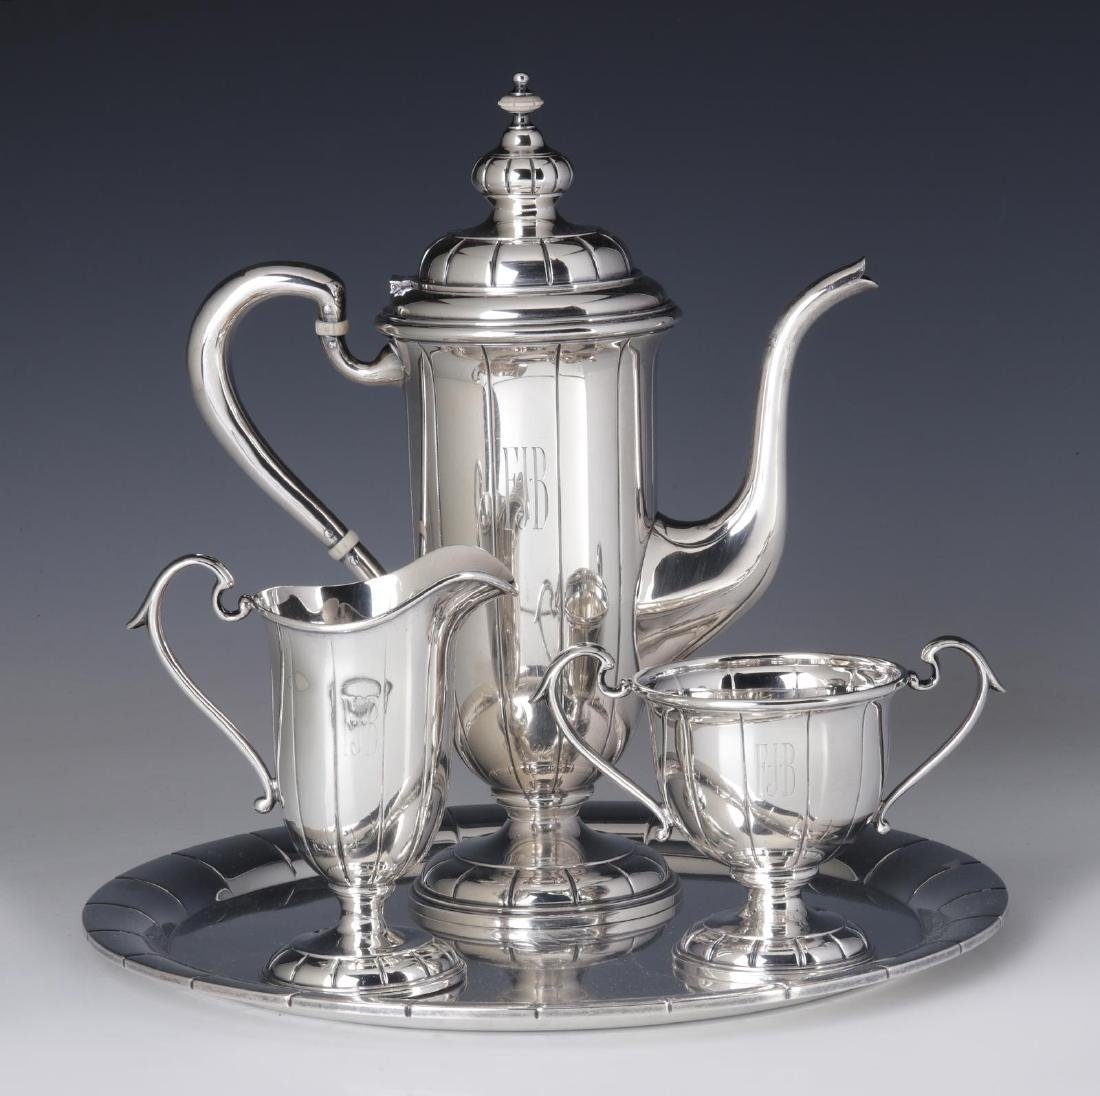 A JULIUS RANDAHL COFFEE SET FOR CALDWELL & CO